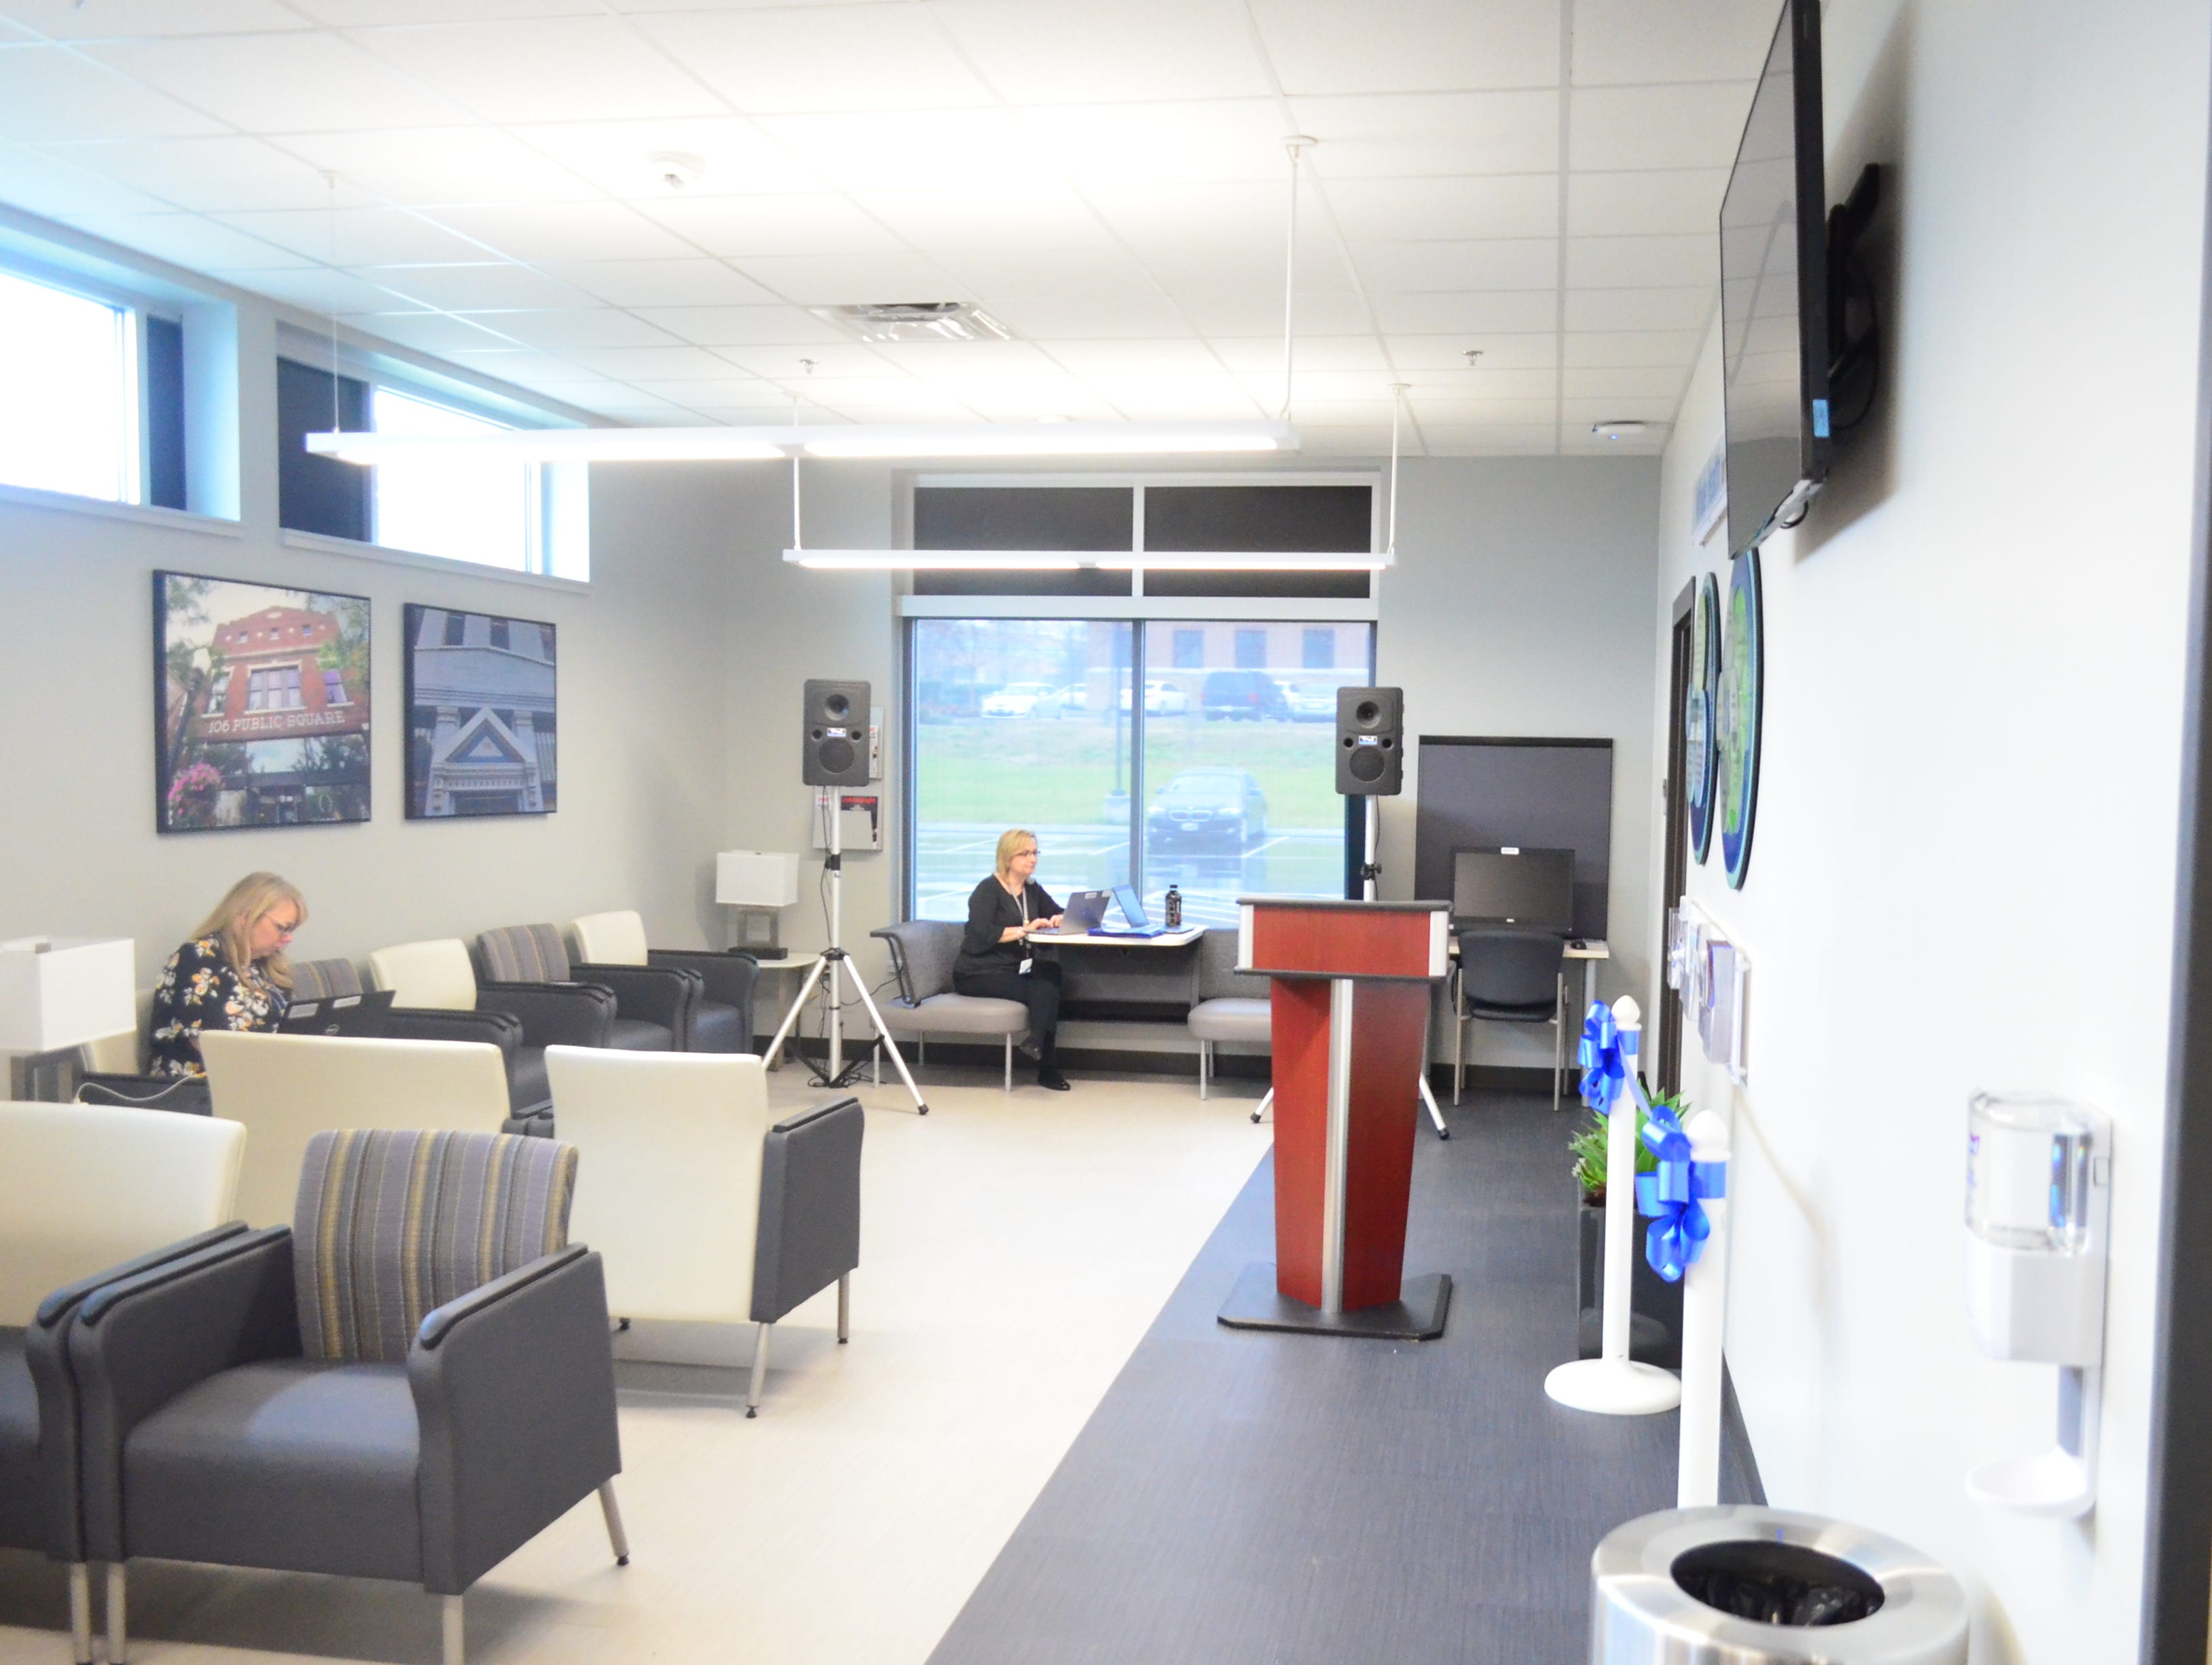 A picture of the lobby of the new VA clinic in Gallatin.